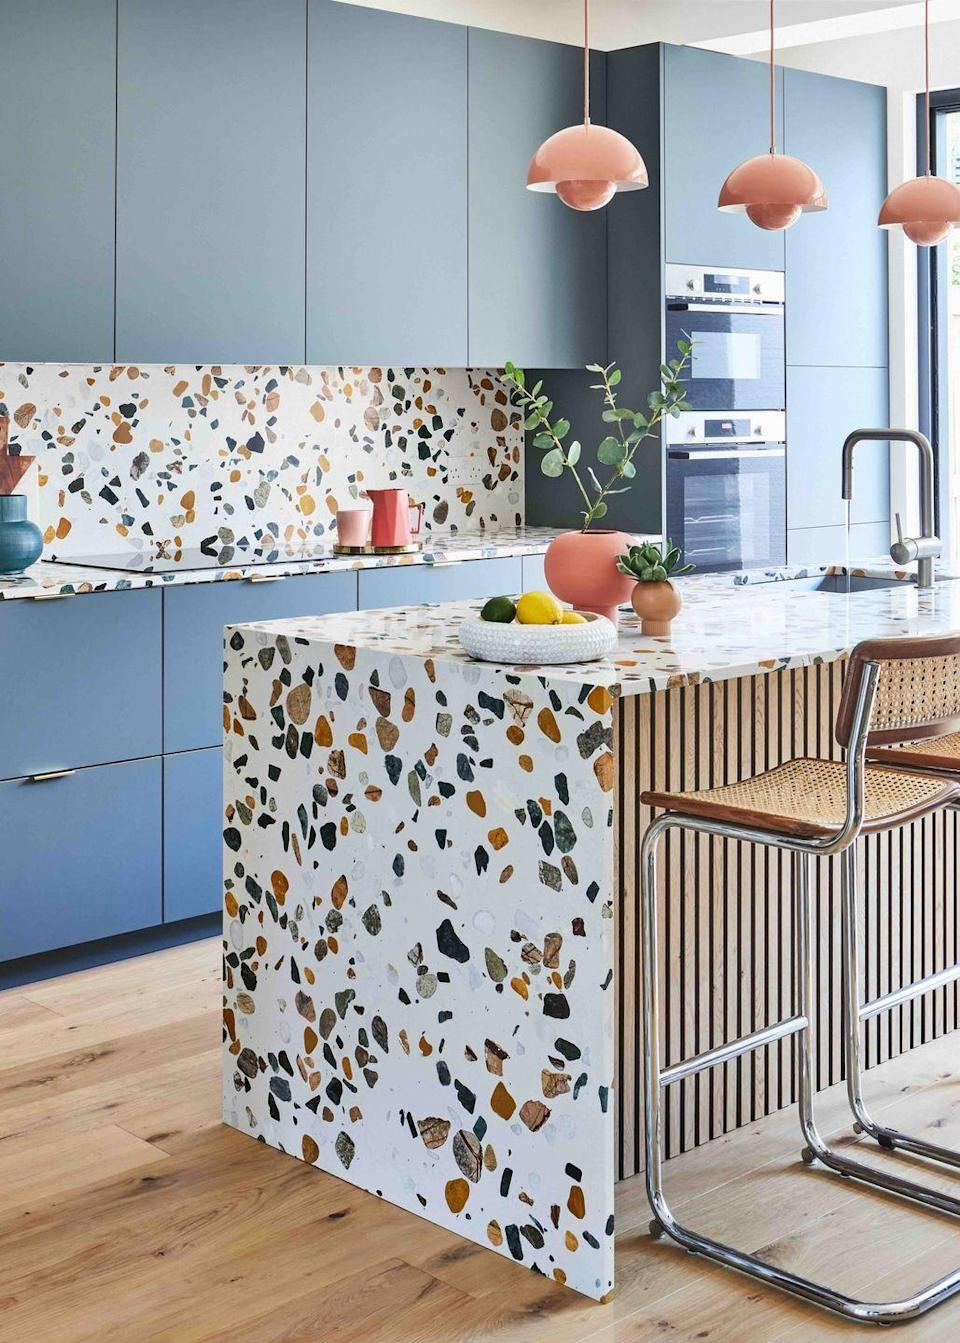 """<p>Kitchen surfaces offer an opportunity to go wild with colour – choose from speckled terrazzo, pigmented concrete, laminate or stained timbers. This kitchen by interior design Nicky Bamford-Bowes has picked out shades of blue and pink from its terrazzo top and splashback, made by specialist Diespeker & Co, to create a harmonious yet bold look. <a href=""""https://www.diespeker.co.uk/"""" rel=""""nofollow noopener"""" target=""""_blank"""" data-ylk=""""slk:diespeker.co.uk"""" class=""""link rapid-noclick-resp"""">diespeker.co.uk</a></p>"""